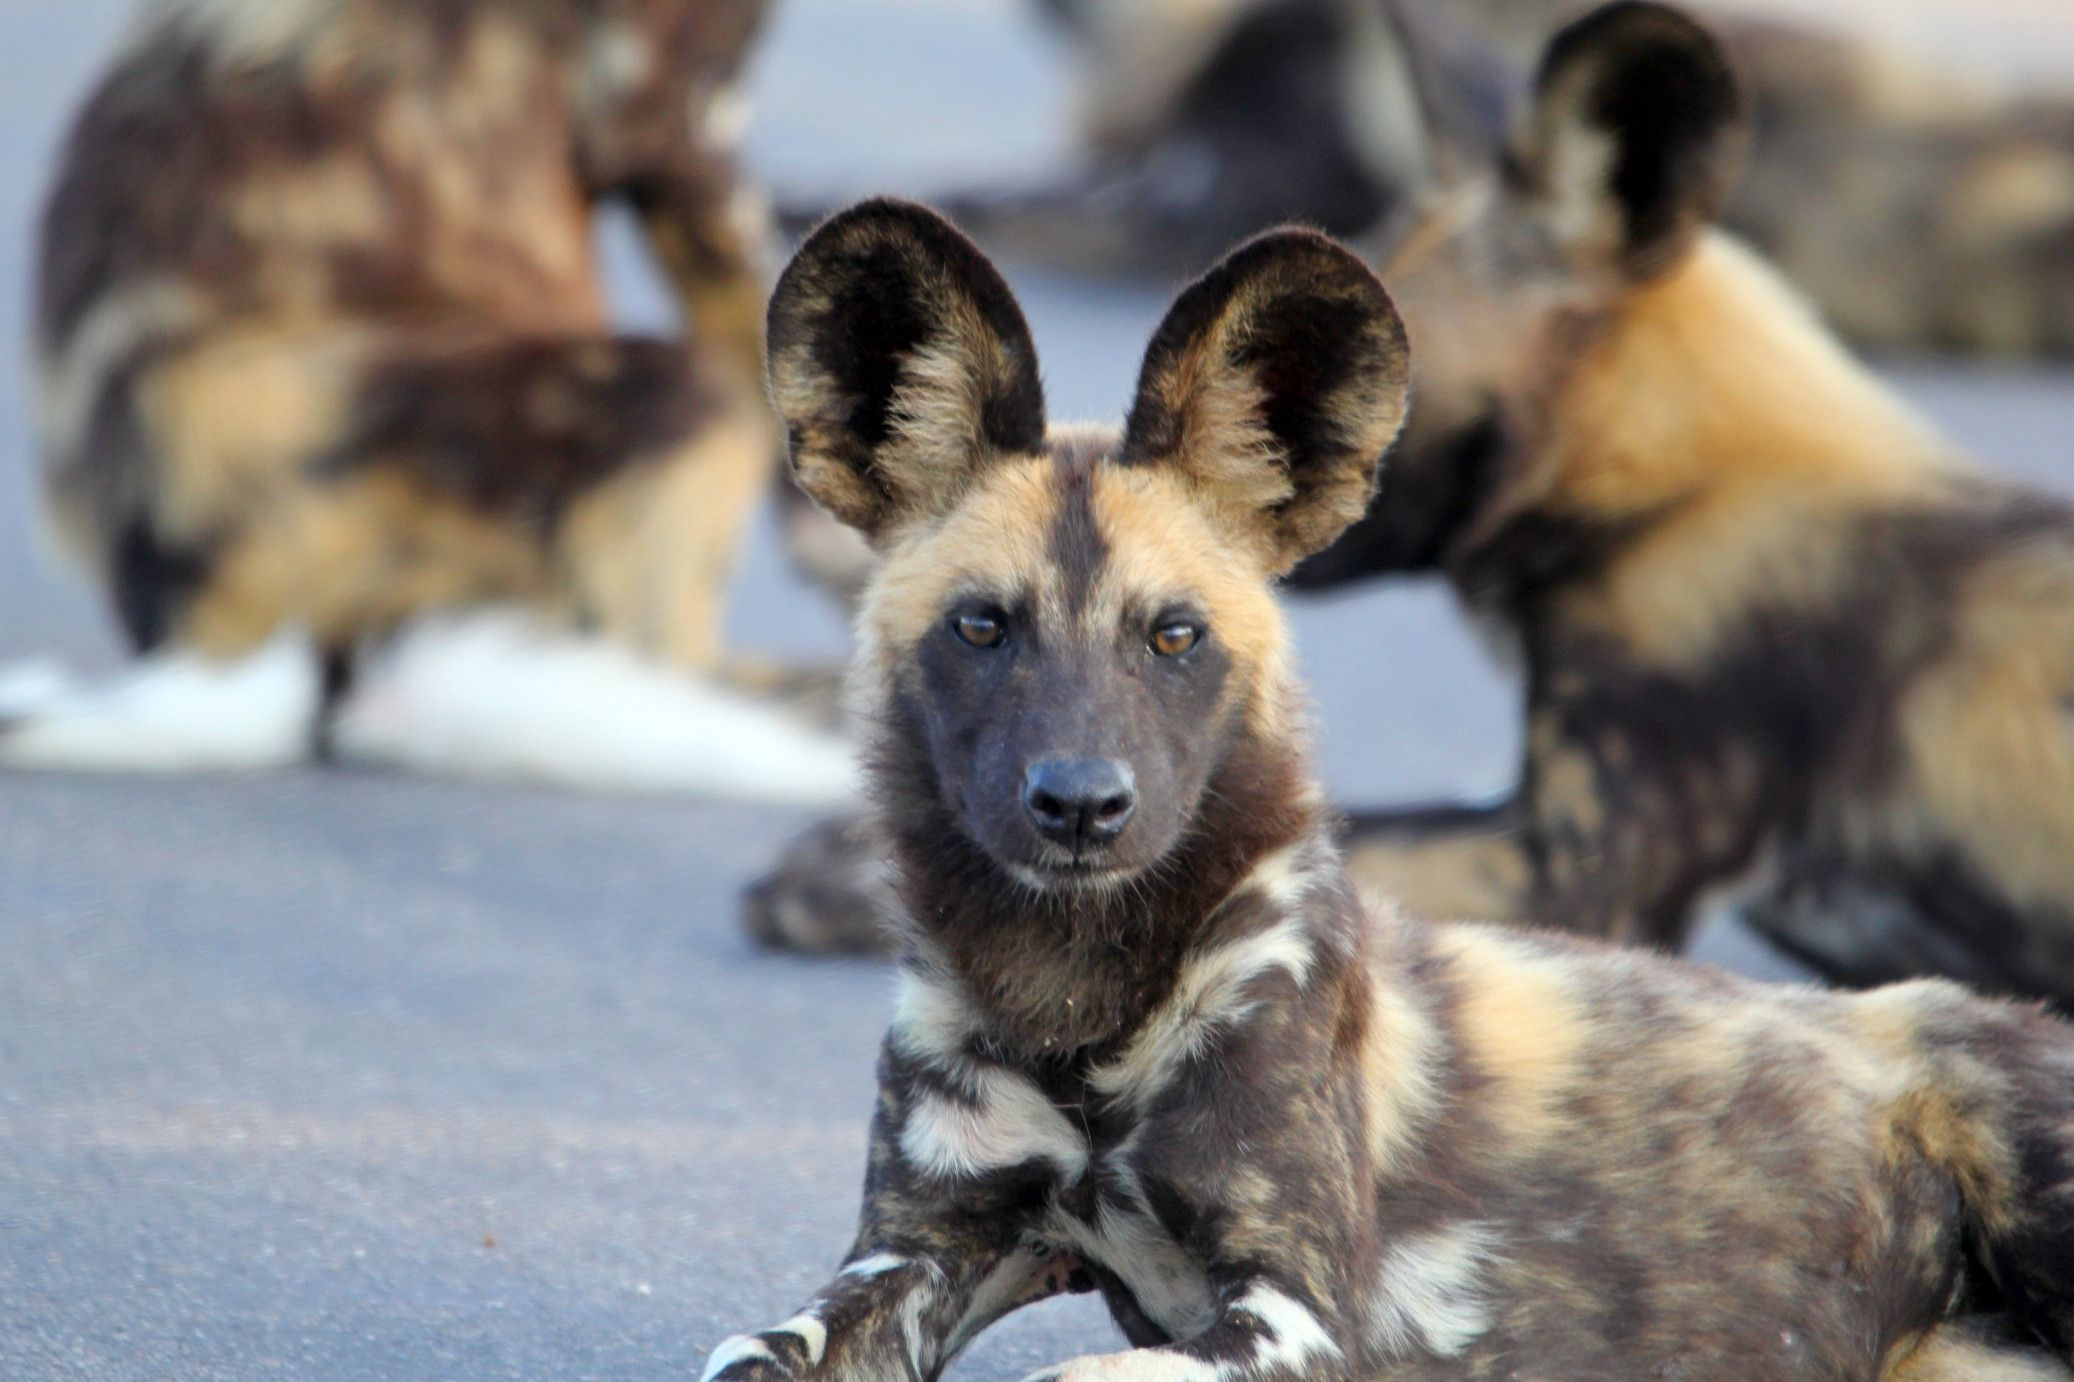 African wild dog looks like a domestic dog